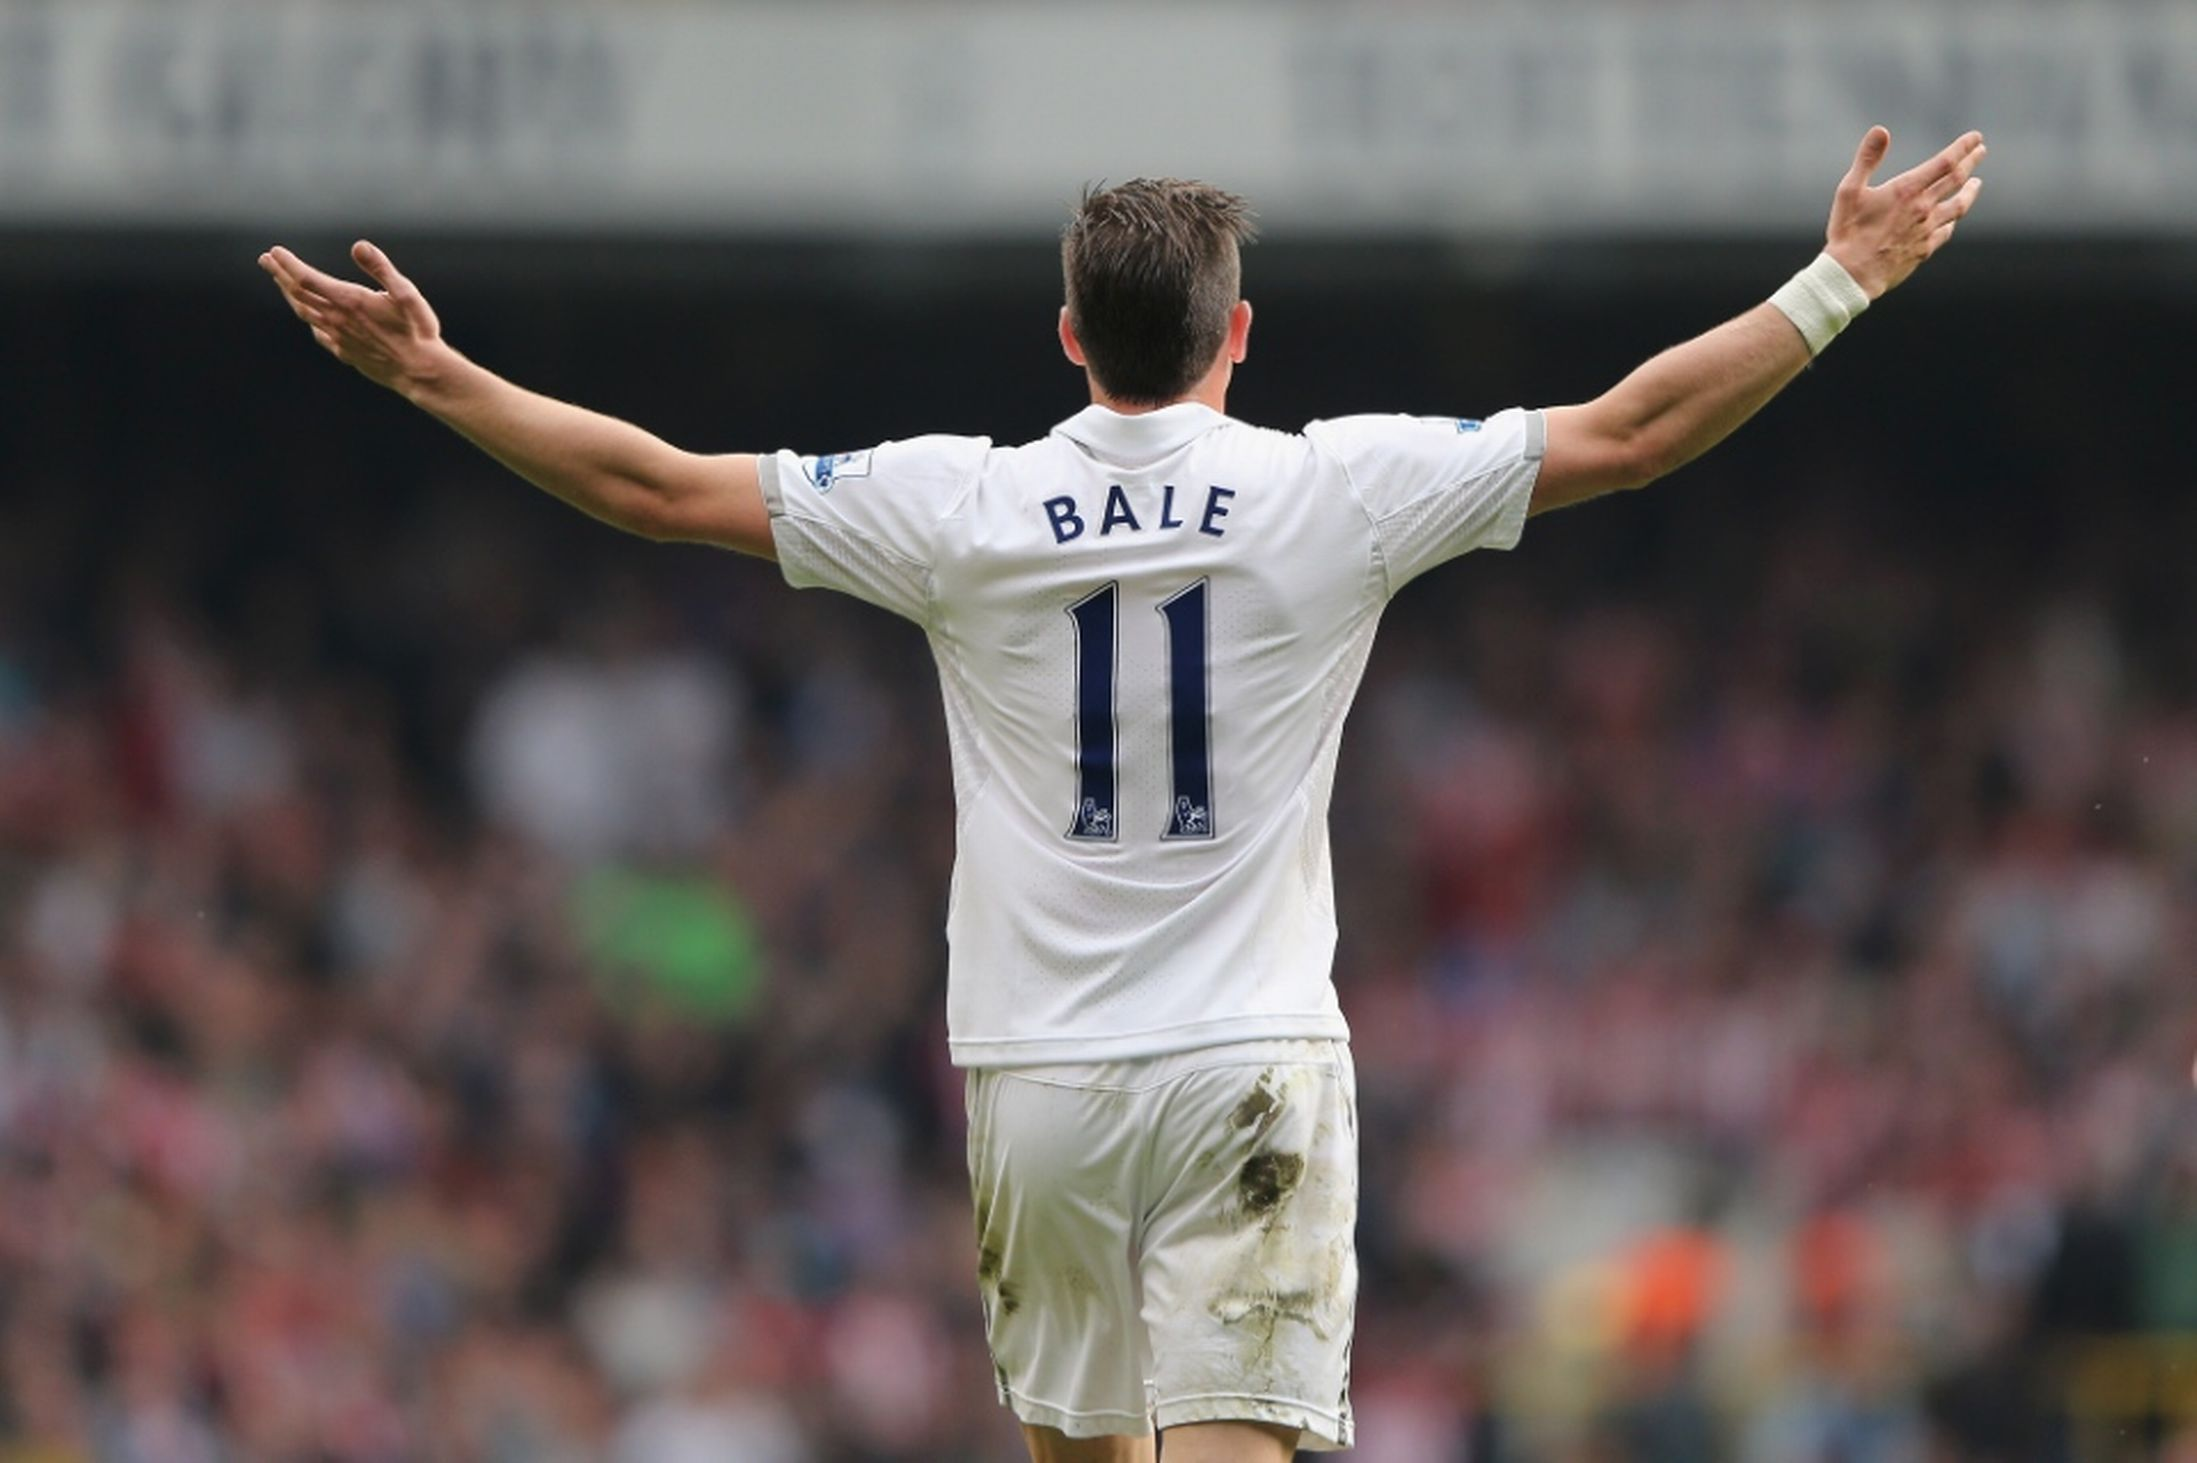 Gareth Bale Goal Celebration Wallpaper HD 2183 Wallpaper 2197x1463